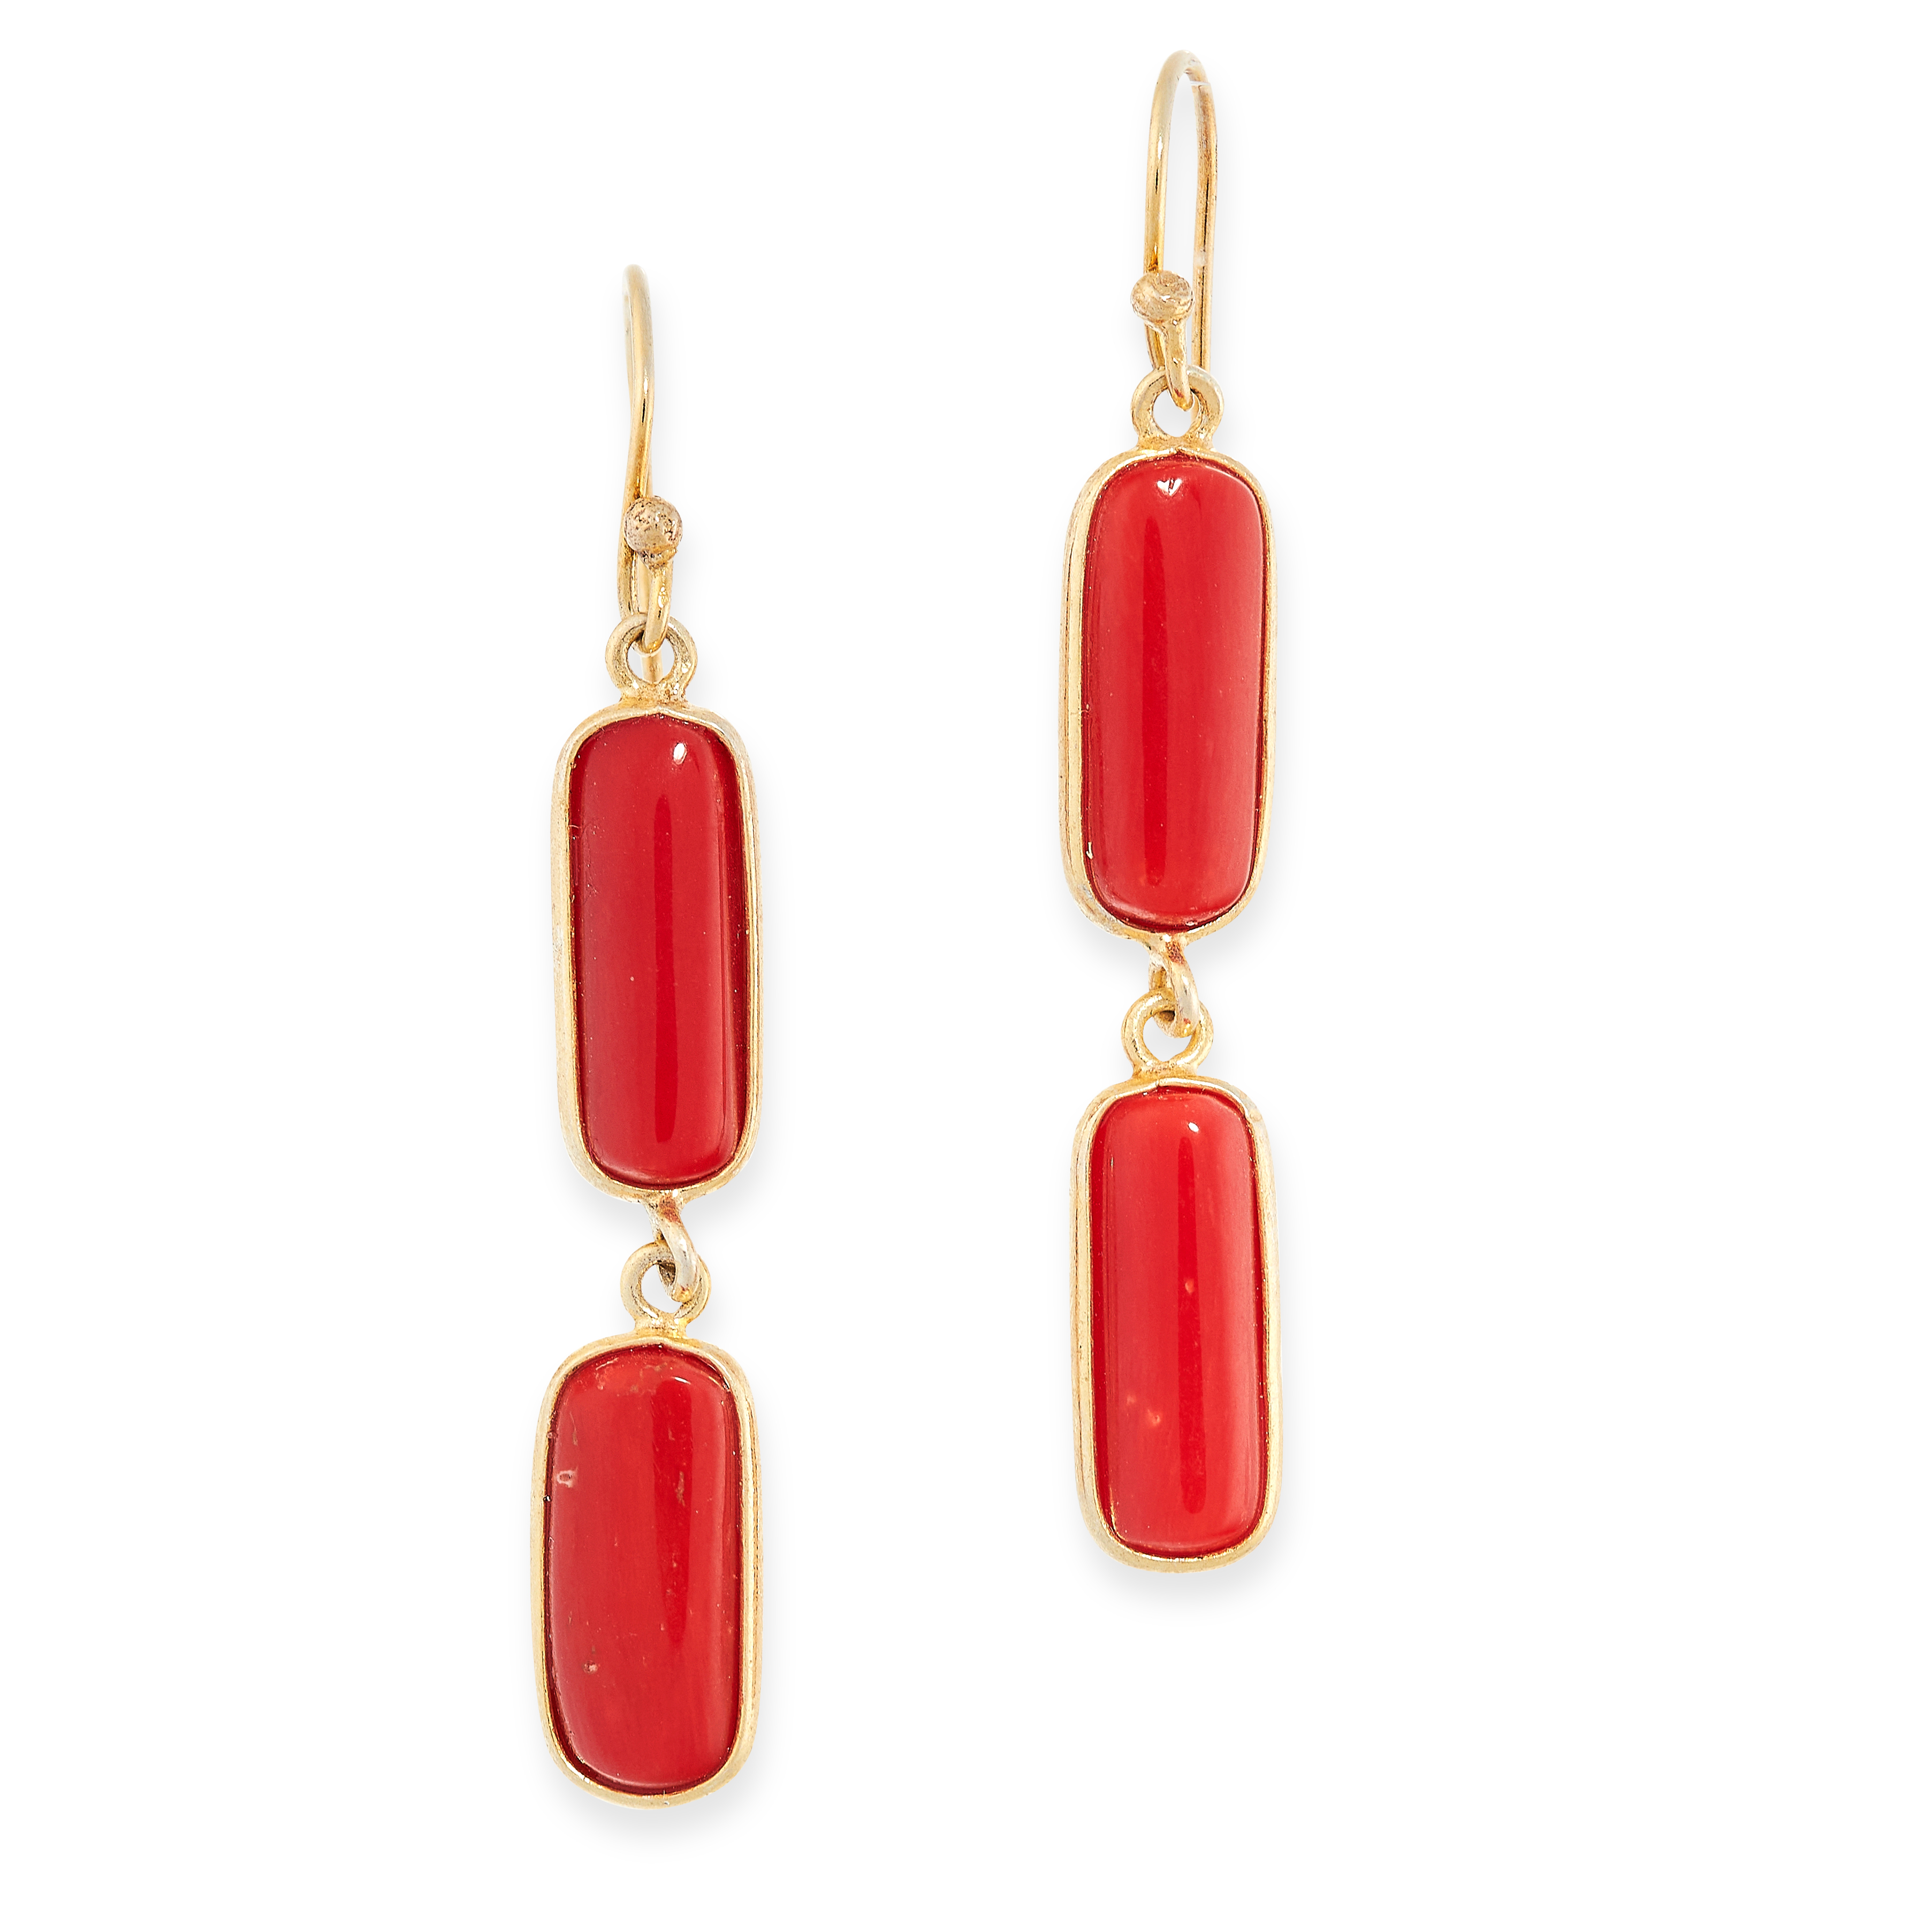 CORAL SAUTOIR AND EARRINGS SUITE the necklace comprises of twenty polished coral batons on chain, - Image 2 of 2